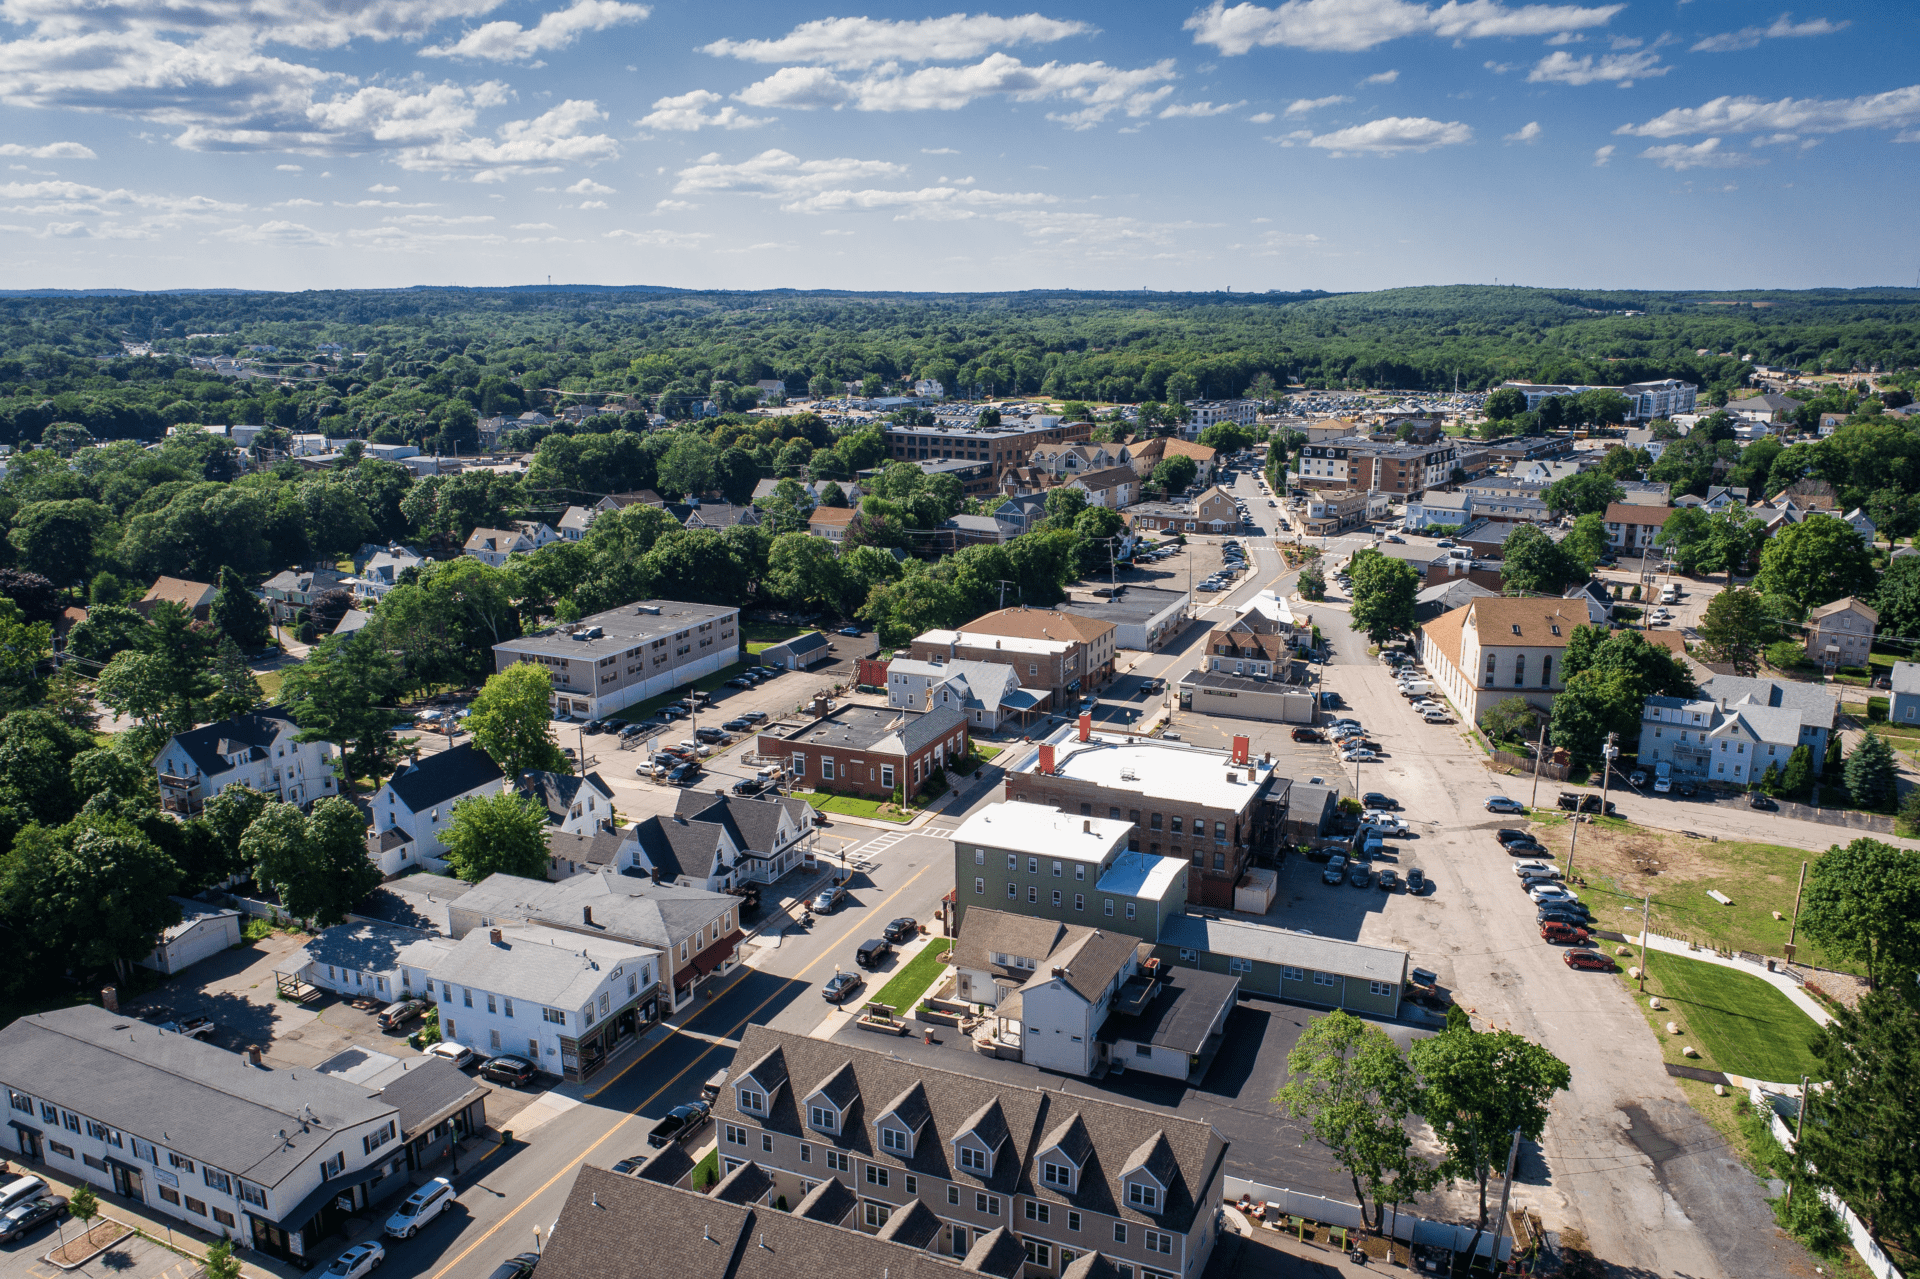 Drone photo of Downtown Mansfield, MA.